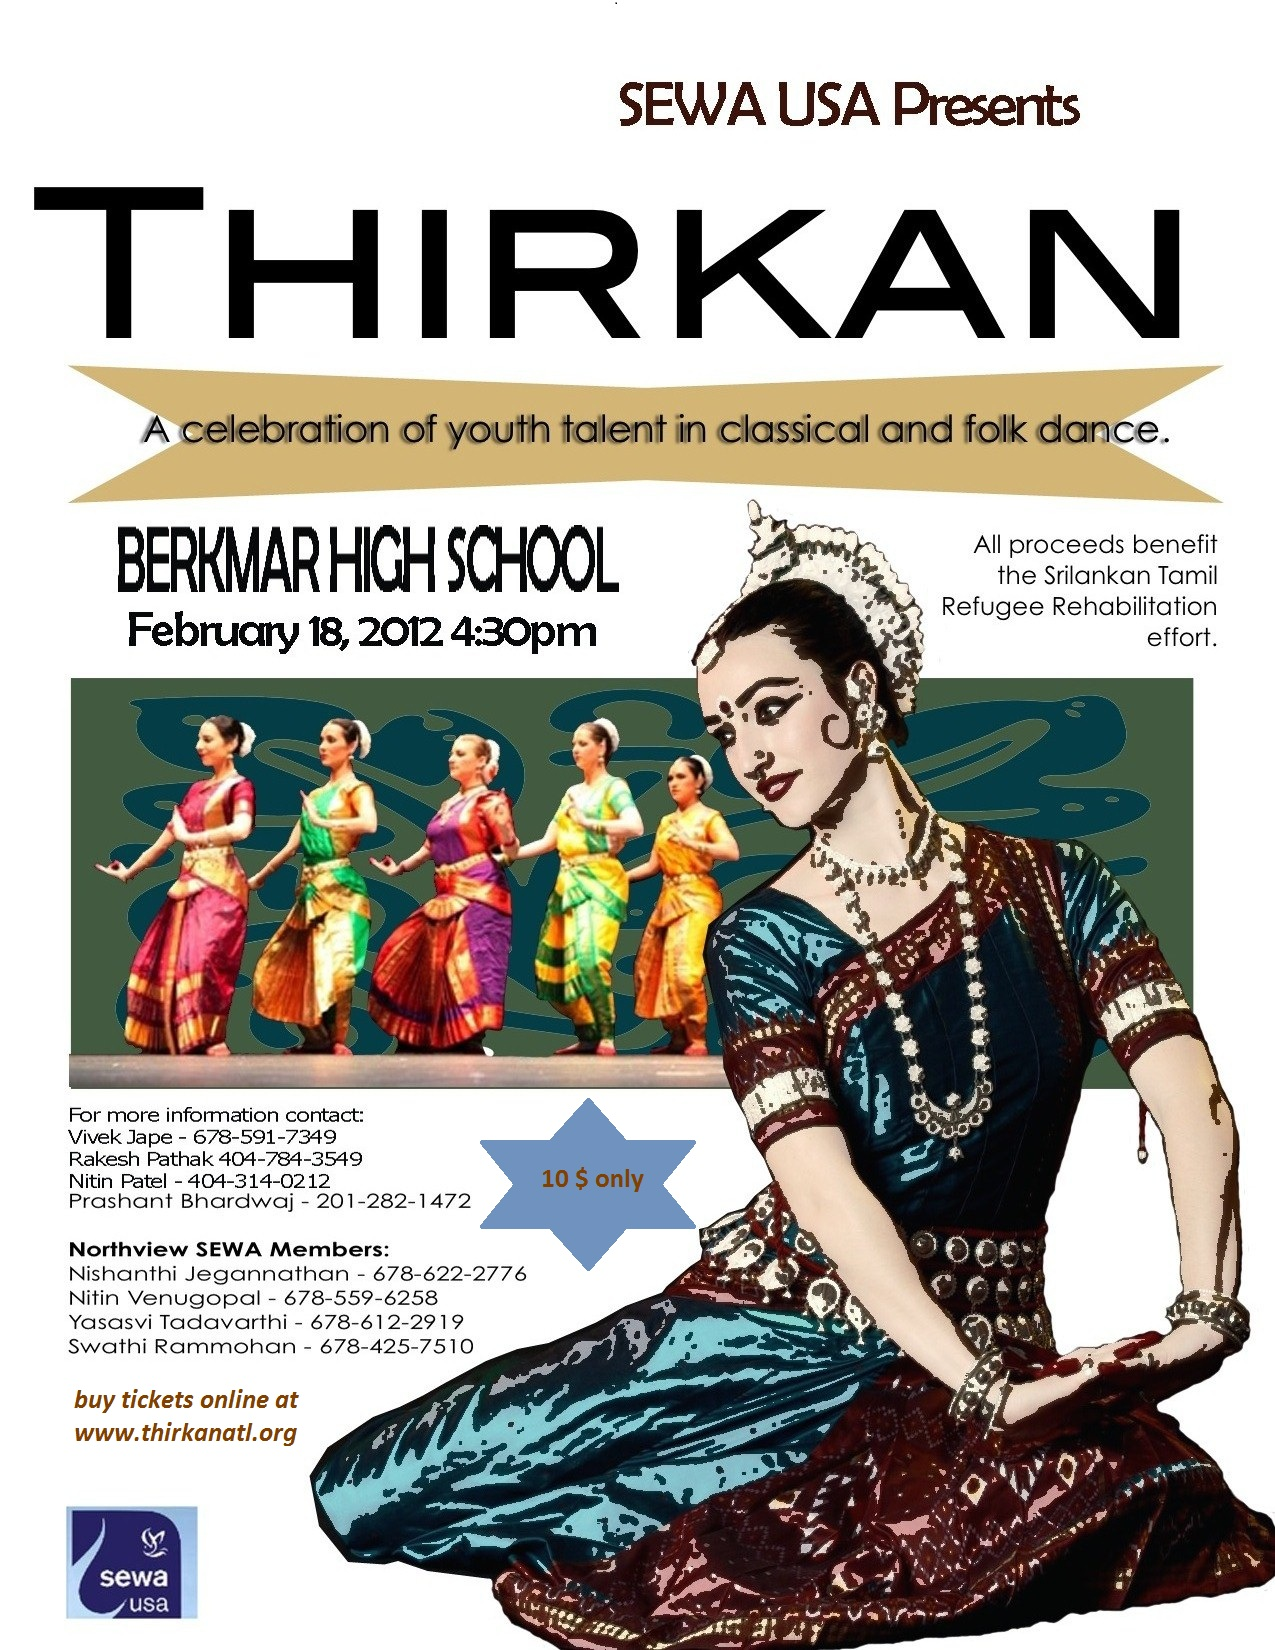 Thirkan Atlanta 2012 Indian Classical and Folk Dance Festival